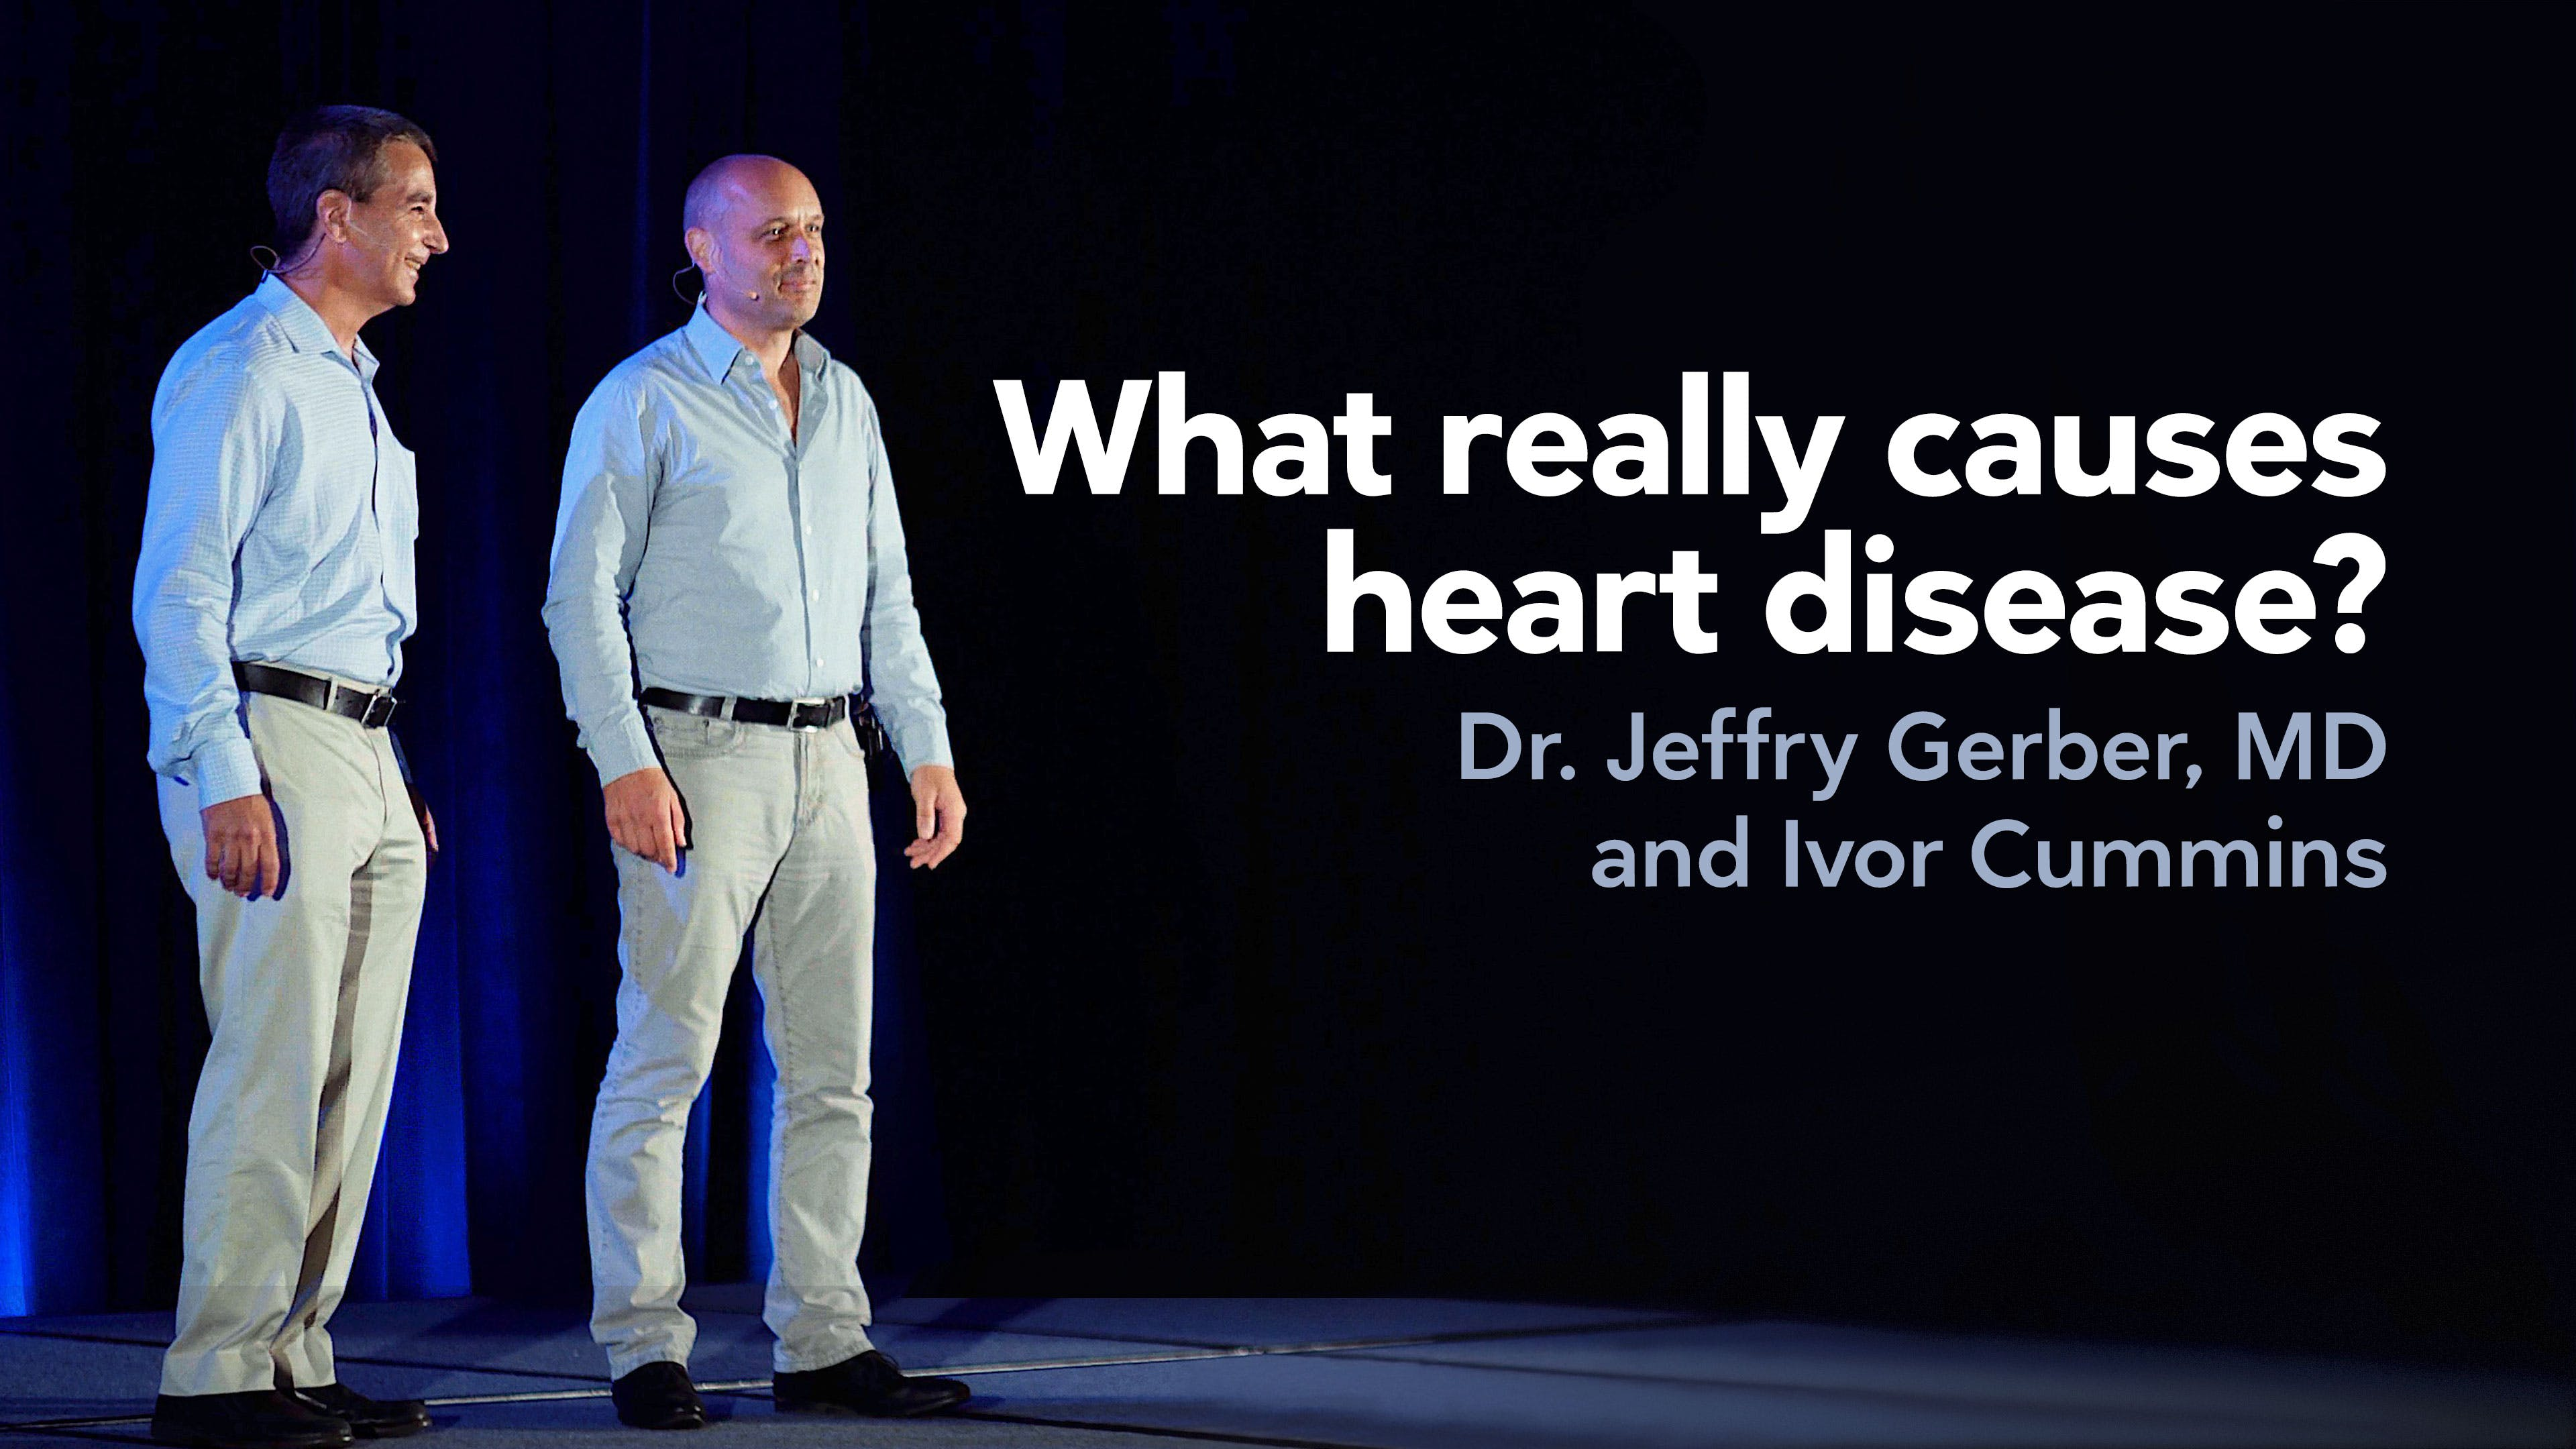 What really causes heart disease?